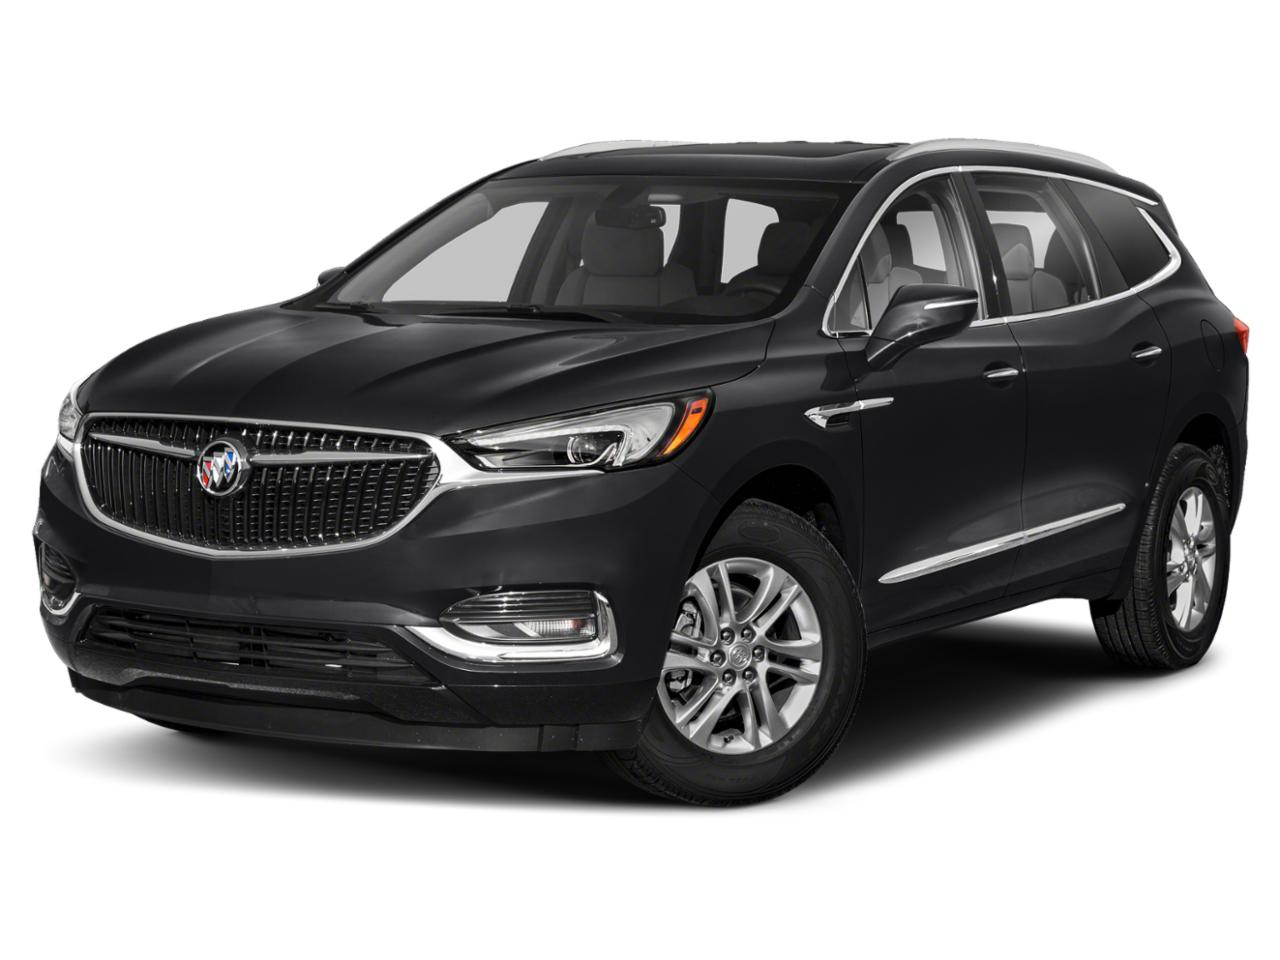 2021 Buick Enclave Vehicle Photo in Grand Rapids, MI 49512